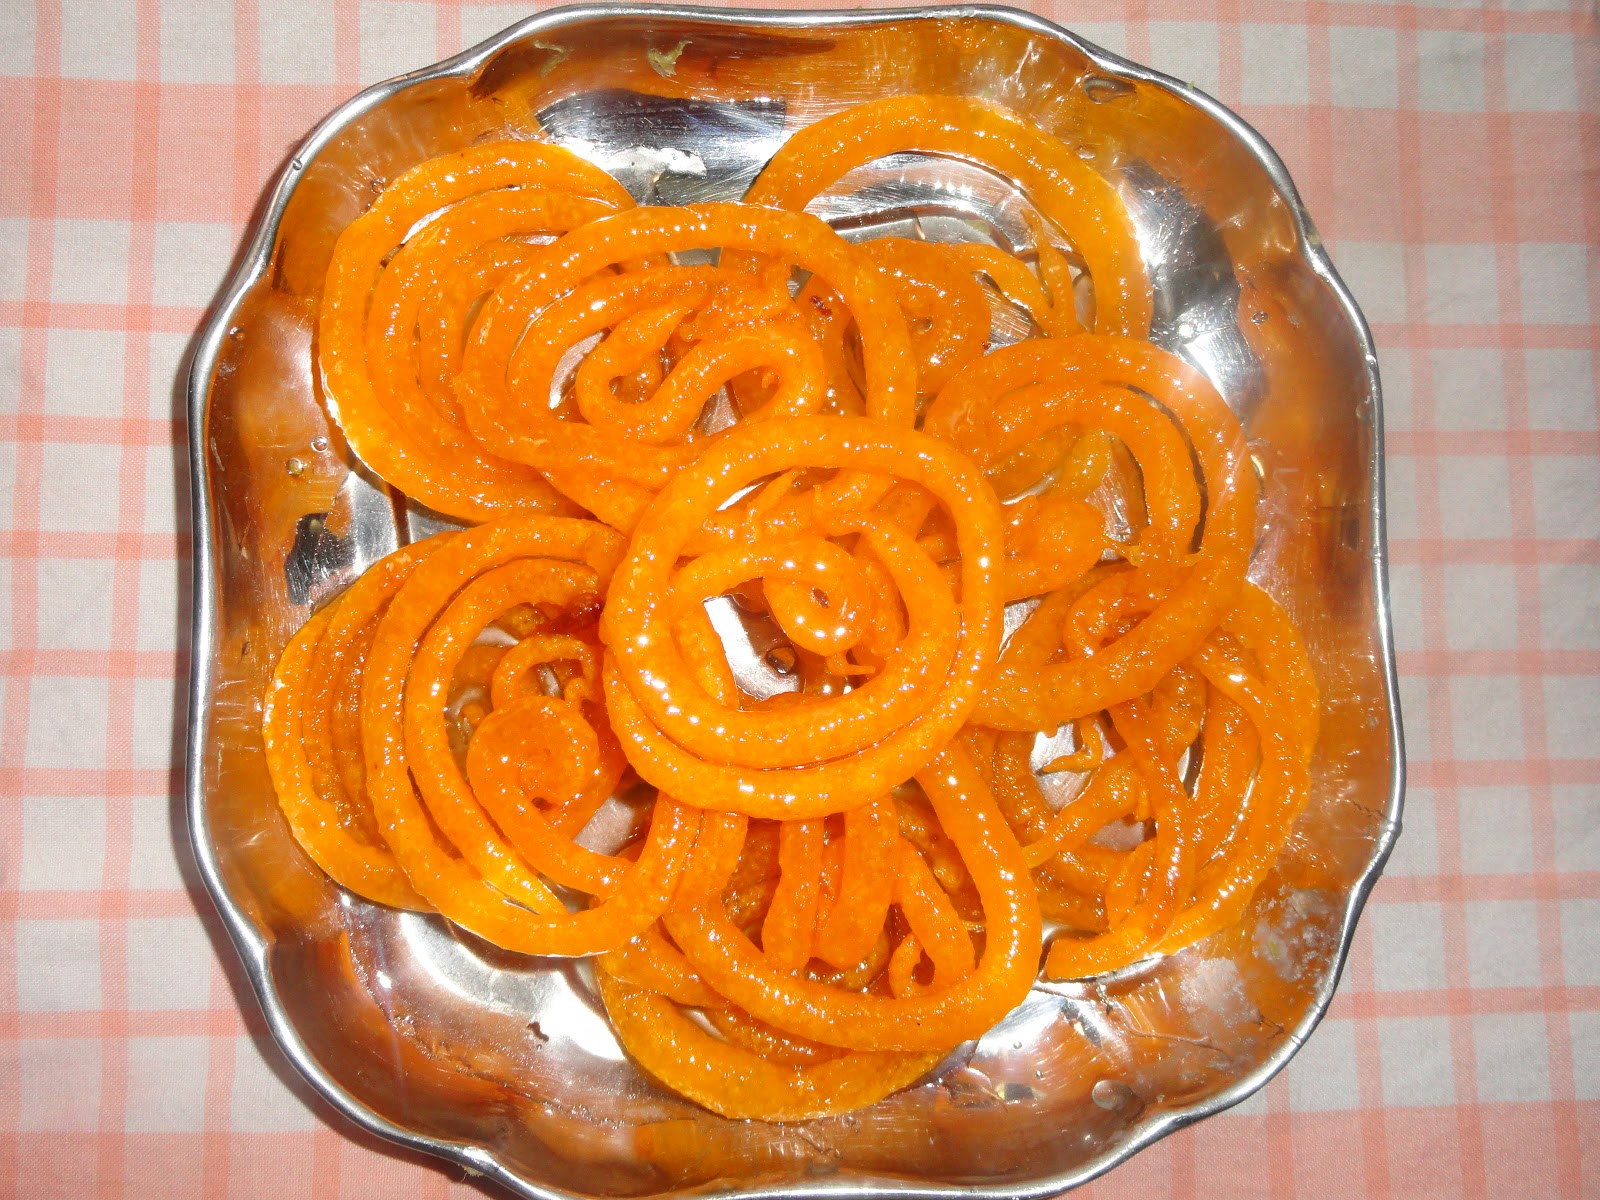 Prathus food home made hot jalebi passionate cooking for home made hot jalebi forumfinder Image collections